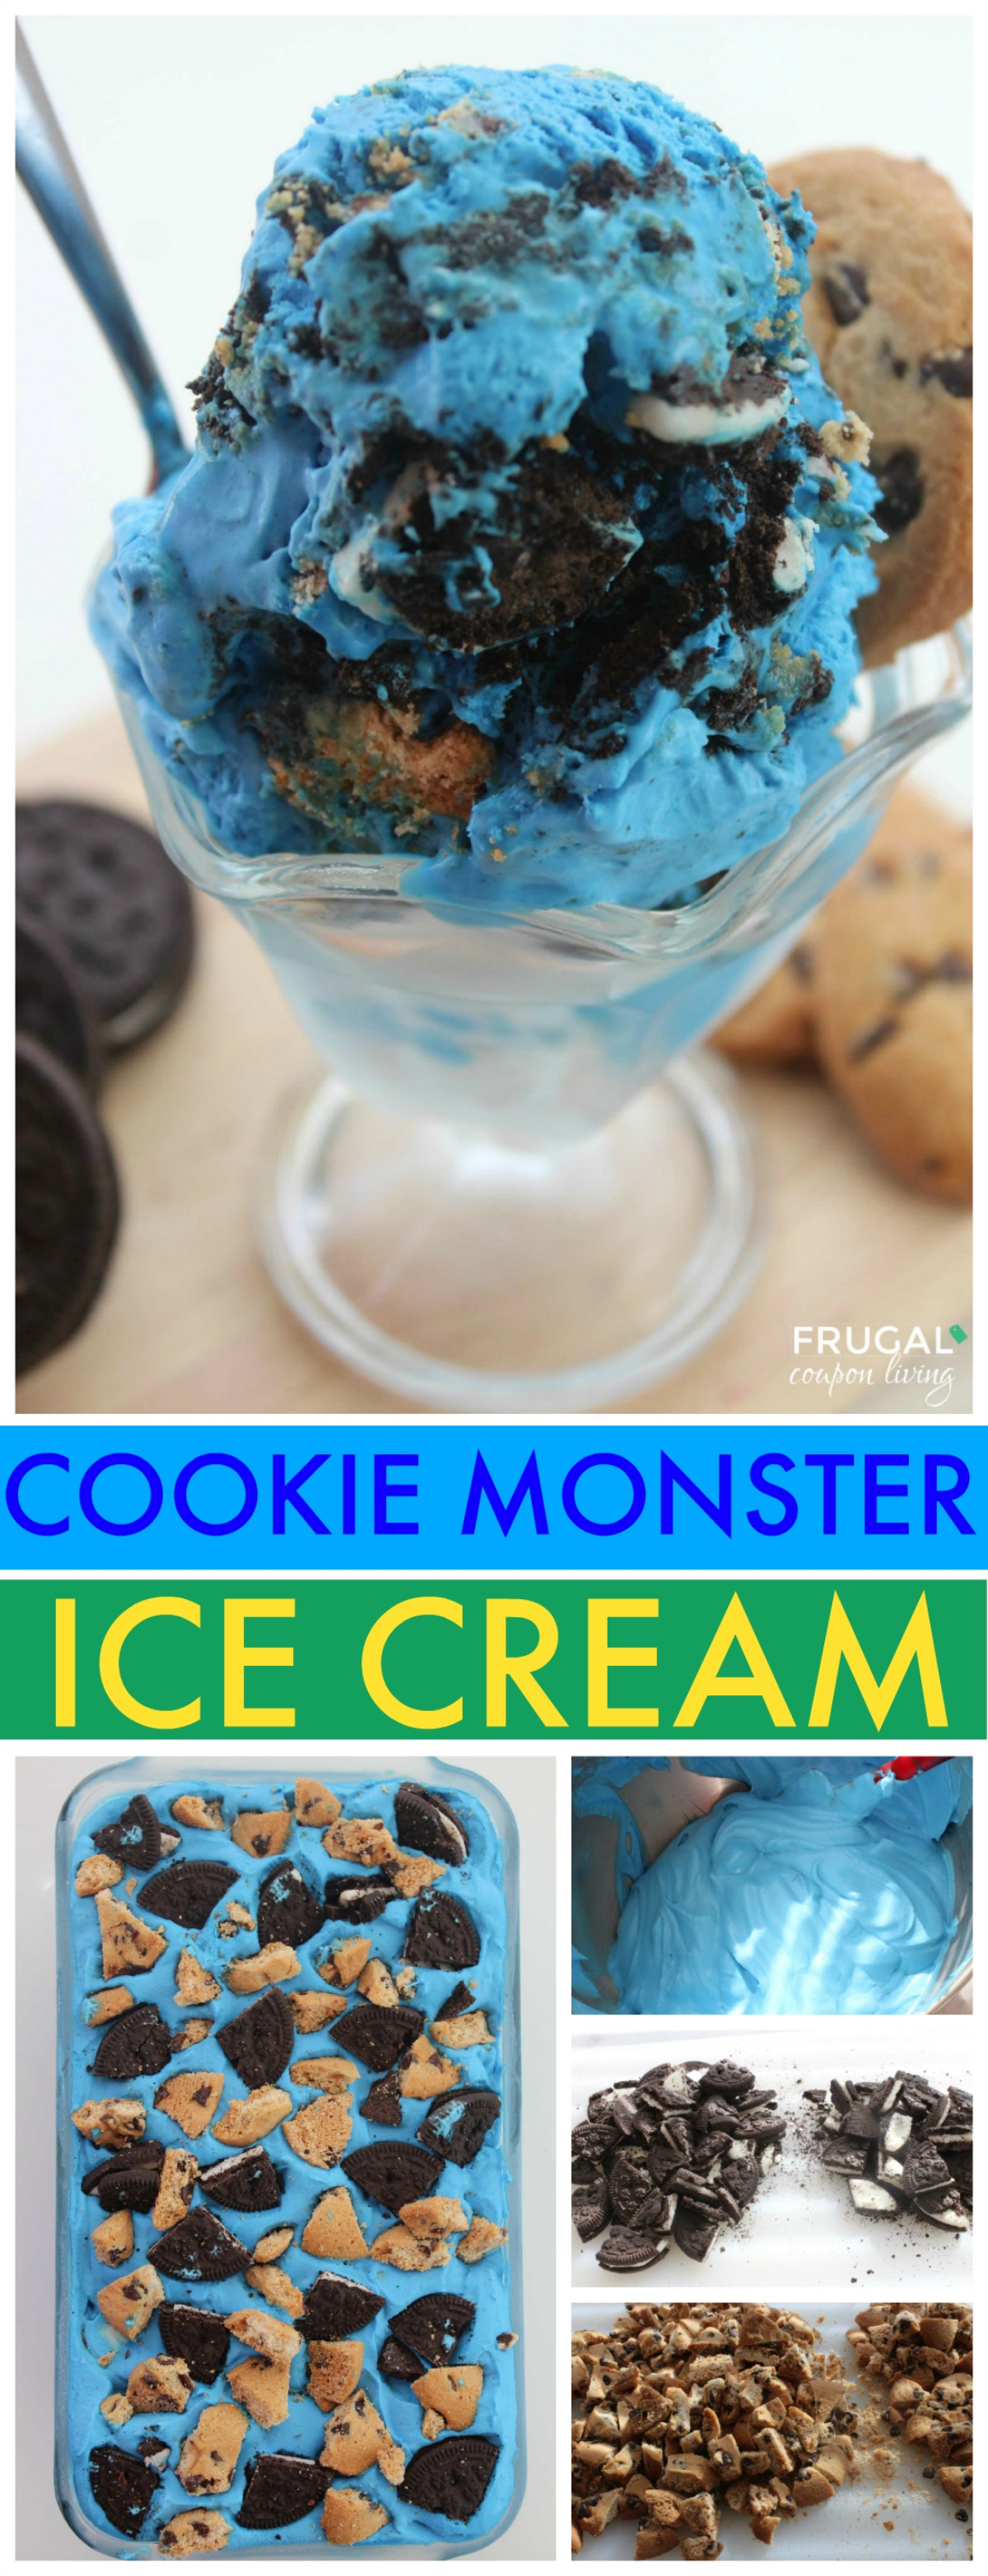 cookie-monster-ice-cream-frugal-coupon-living-Collage